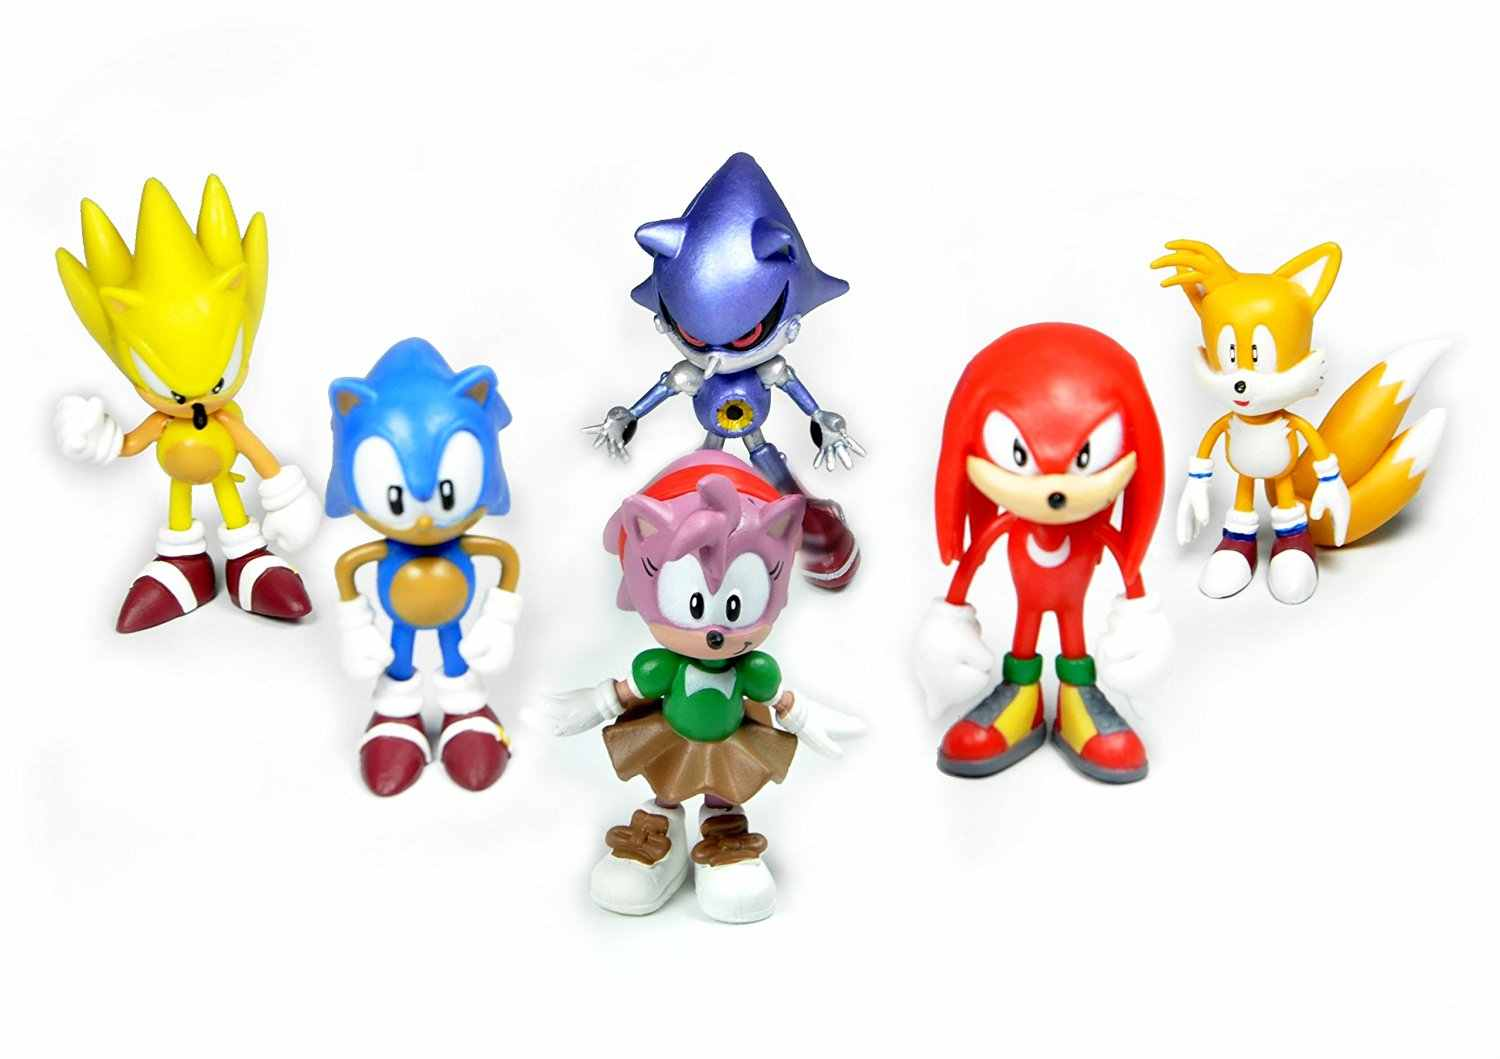 6pcs Lot 2 Sonic The Hedgehog Action Figure Knuckles Sonic Super Sonic Amy Metal Sonic And Tails Tru Exclusive Model Toy Aliexpress